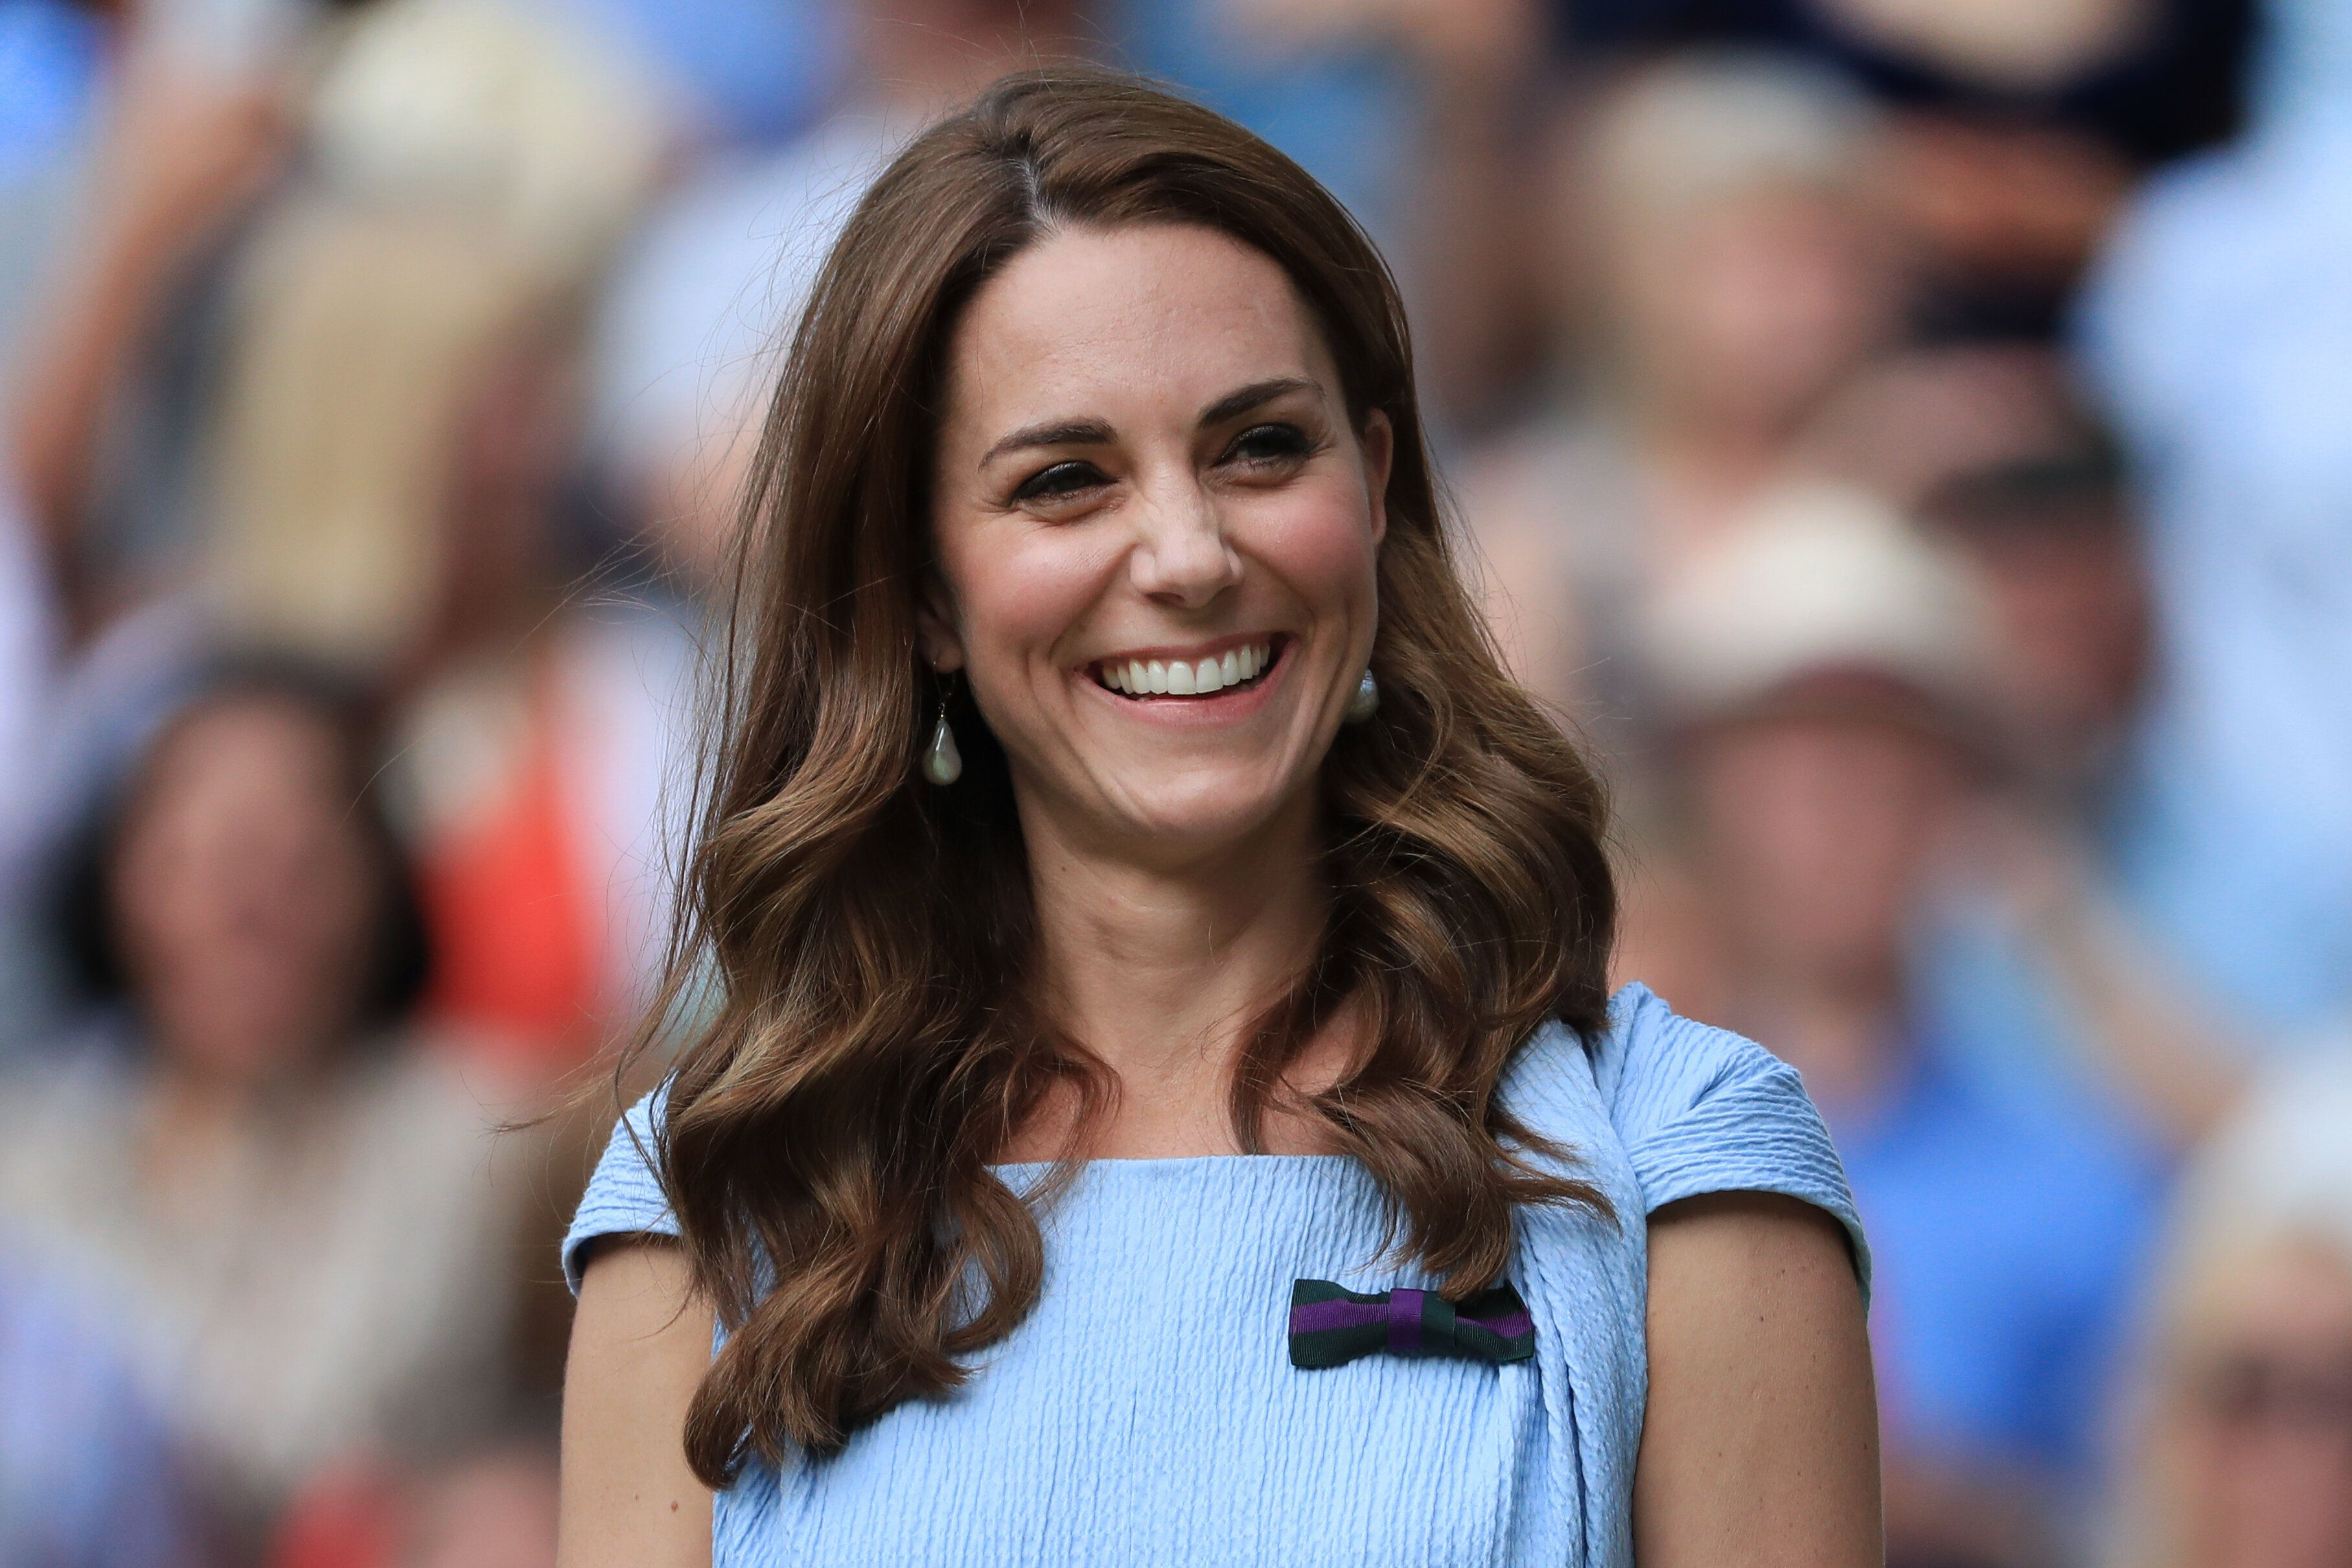 The Duchess of Cambridge laughs and smiles on Day 13 of The Championships - Wimbledon 2019 at the All England Lawn Tennis and